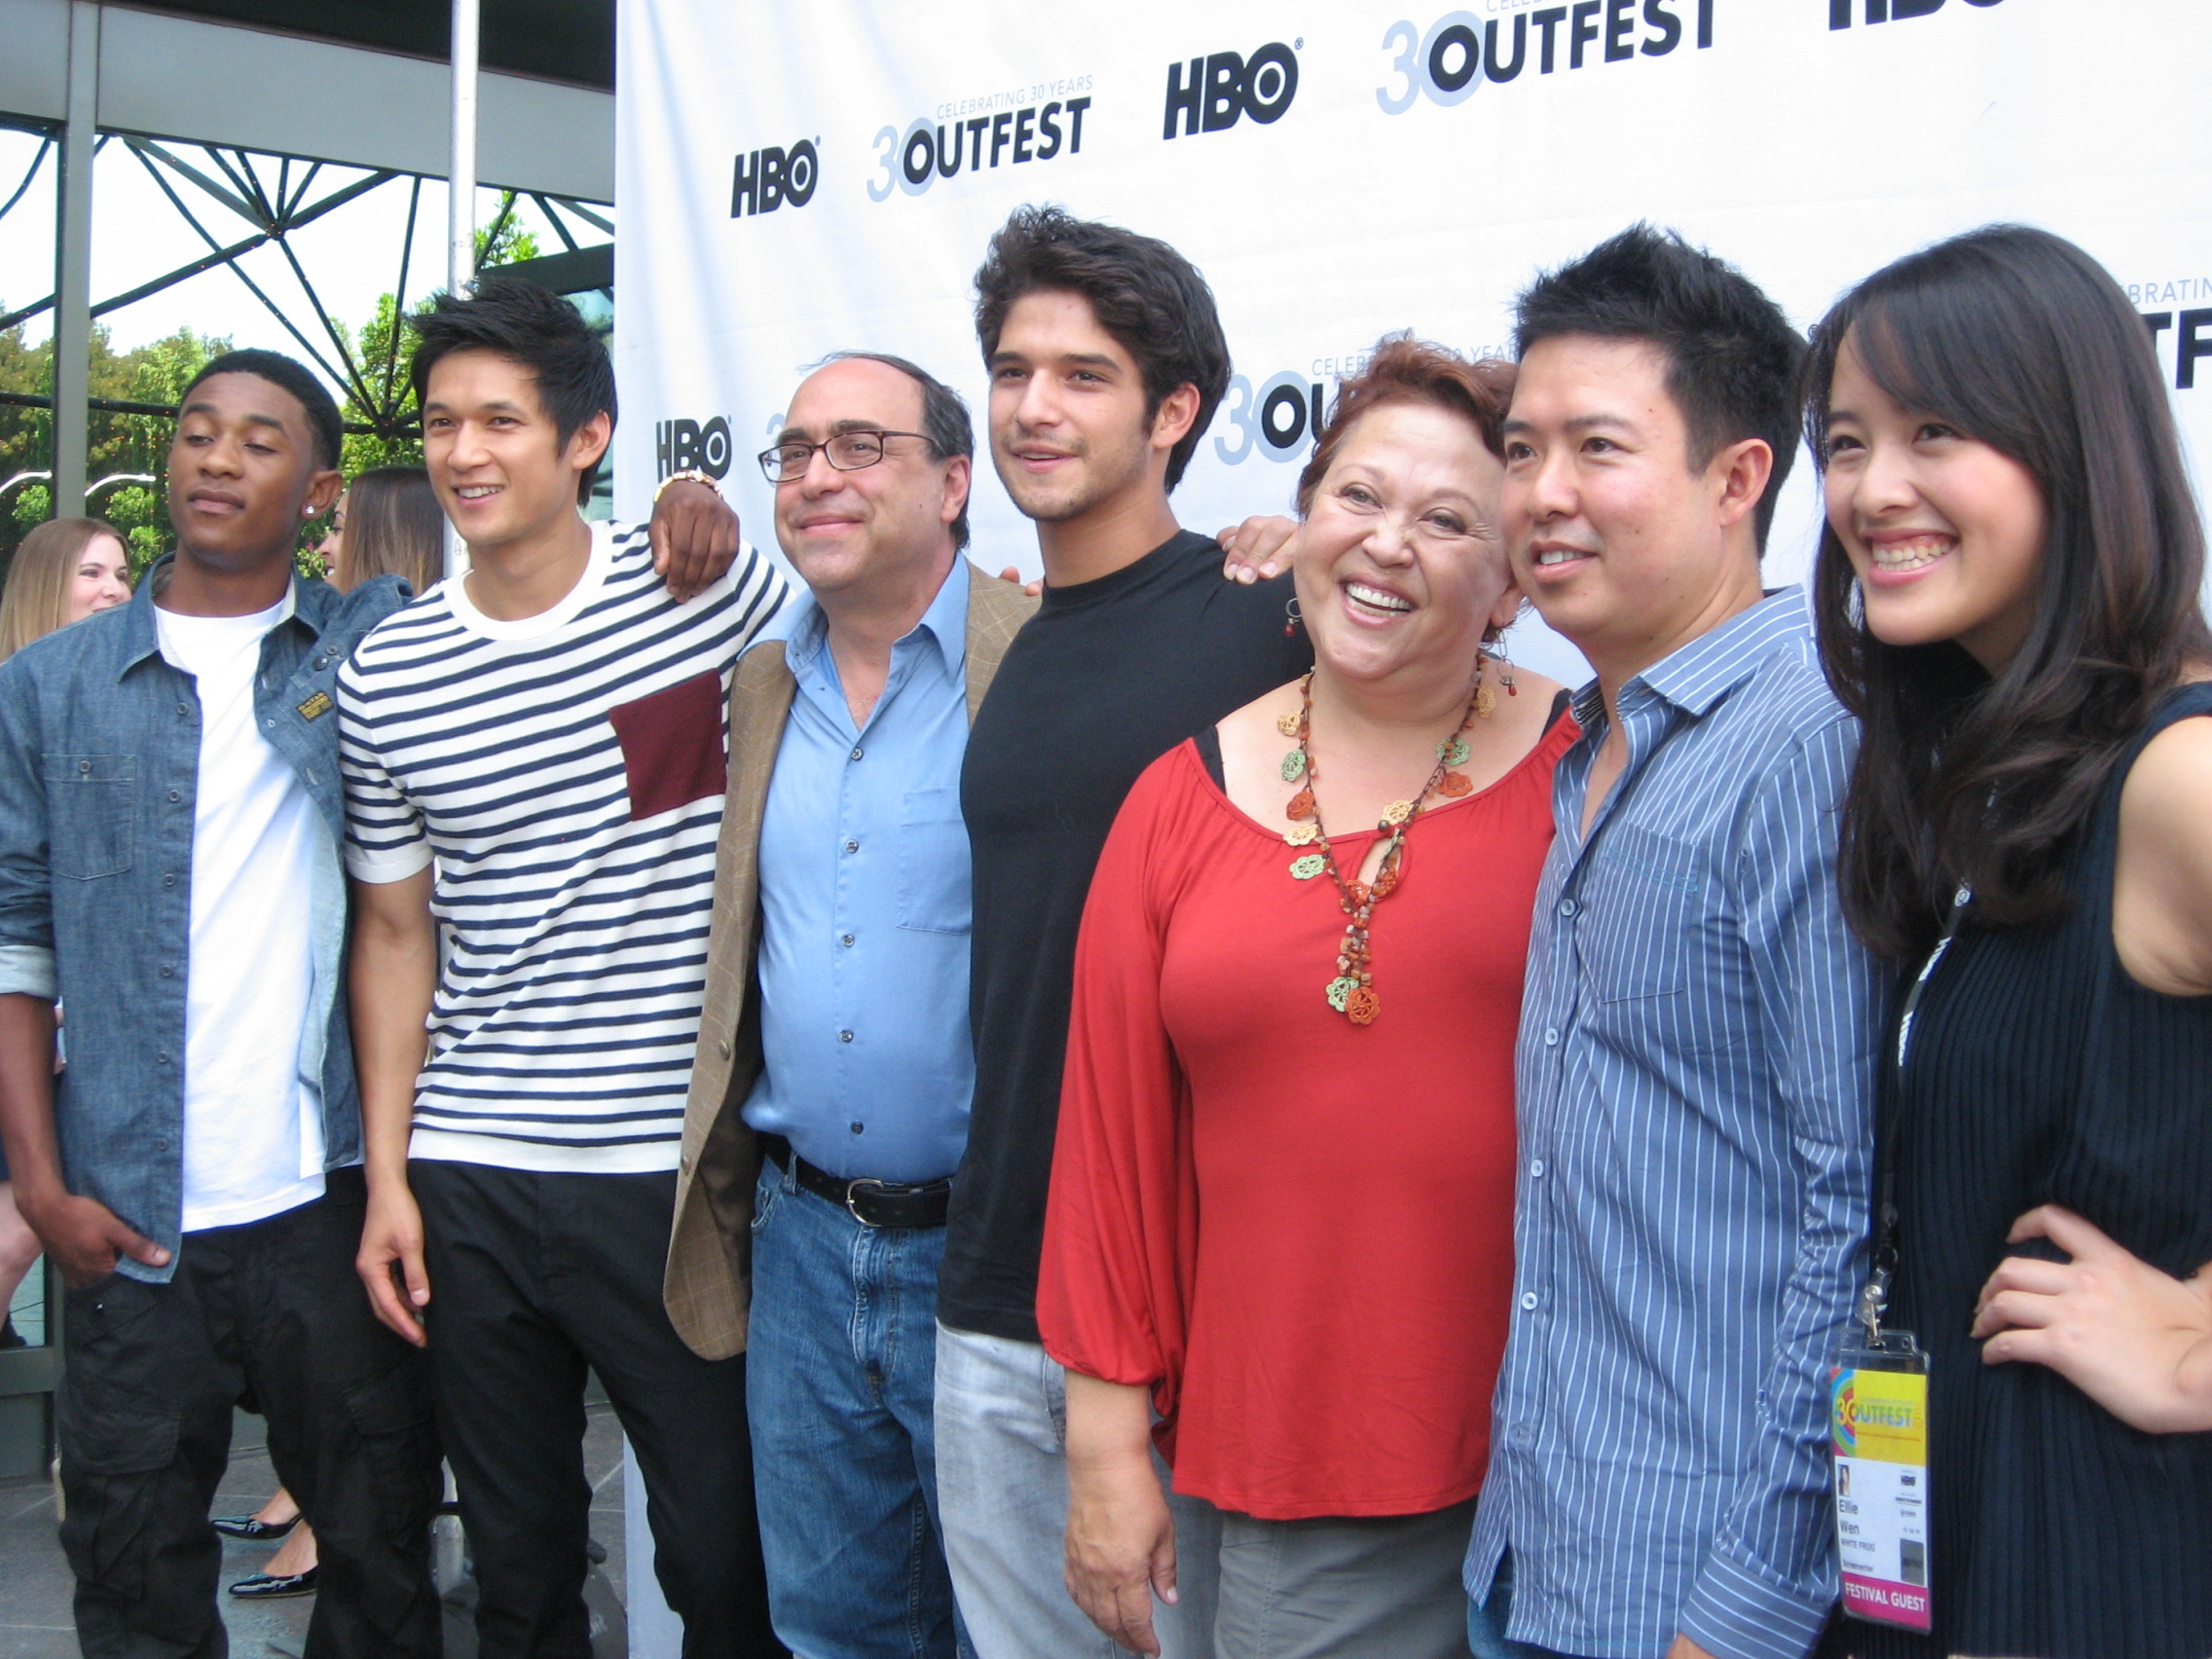 Cast and crew on the red carpet at the Outfest screening (Ellie Wen in foreground).